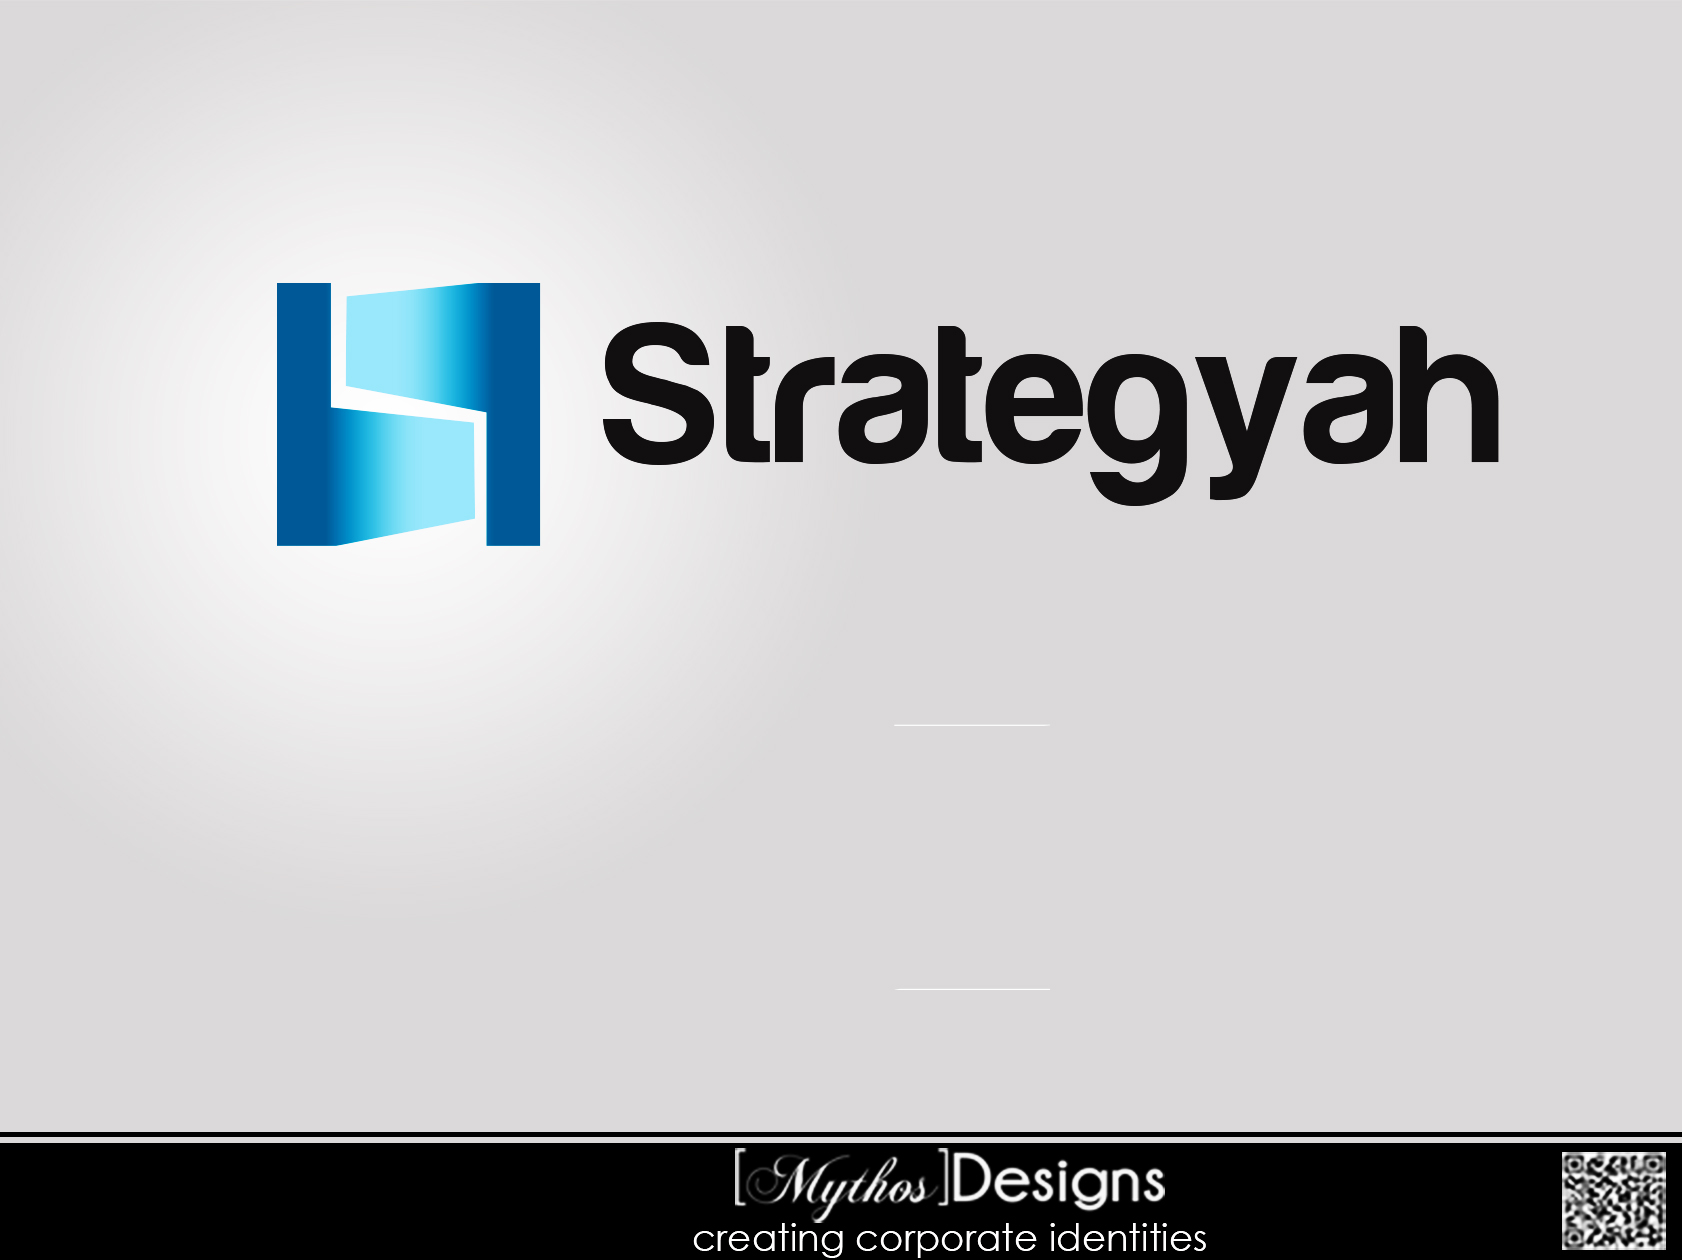 Logo Design by Mythos Designs - Entry No. 400 in the Logo Design Contest Creative Logo Design for Strategyah.